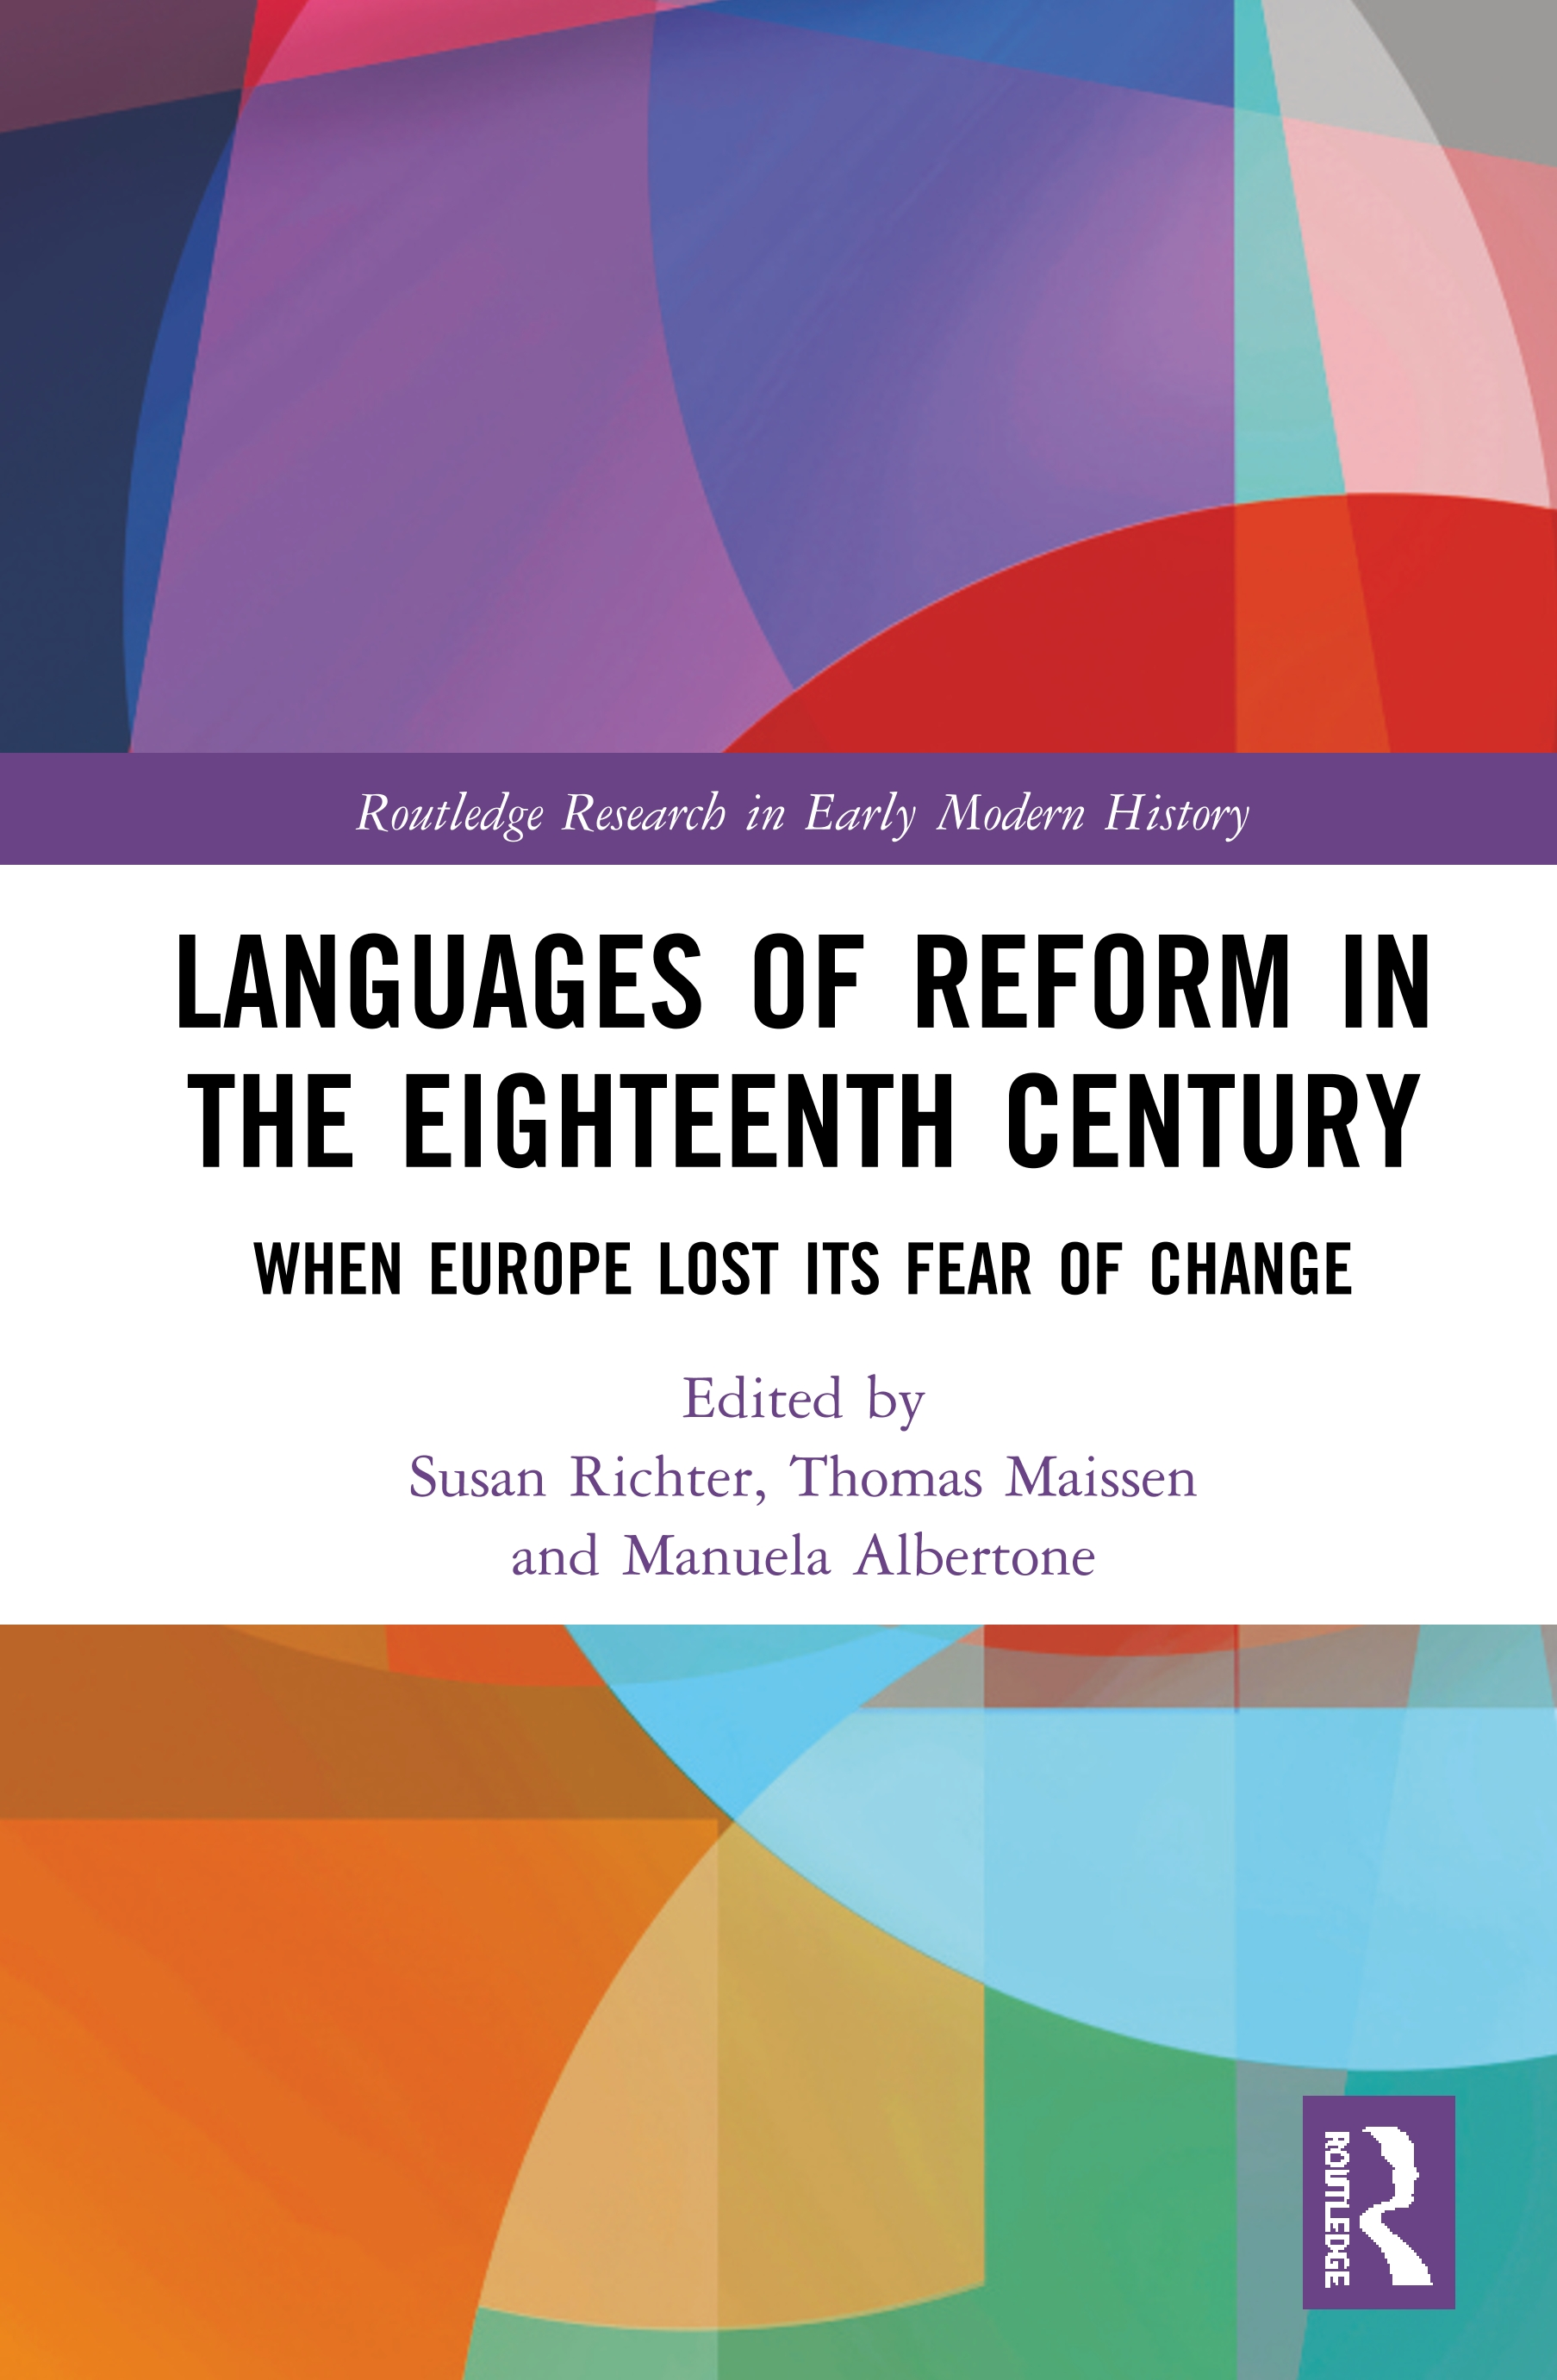 Languages of Reform in the Eighteenth Century: When Europe Lost Its Fear of Change book cover